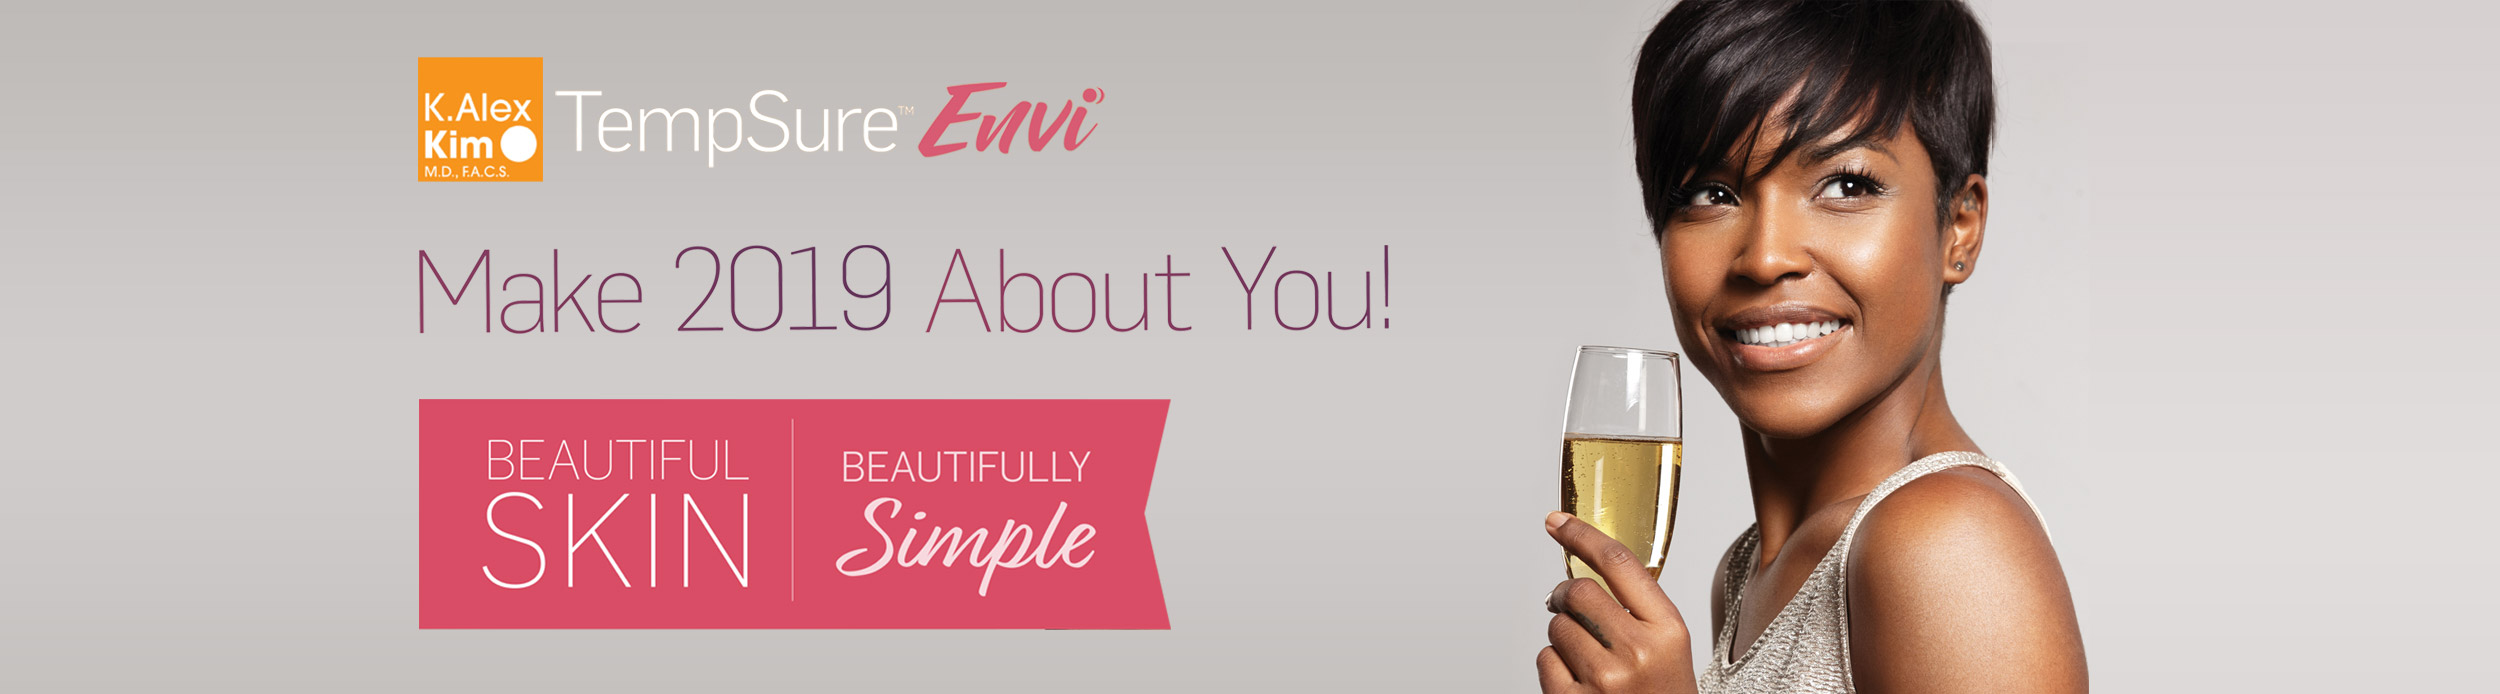 Make 2019 About You! TempSure Envi